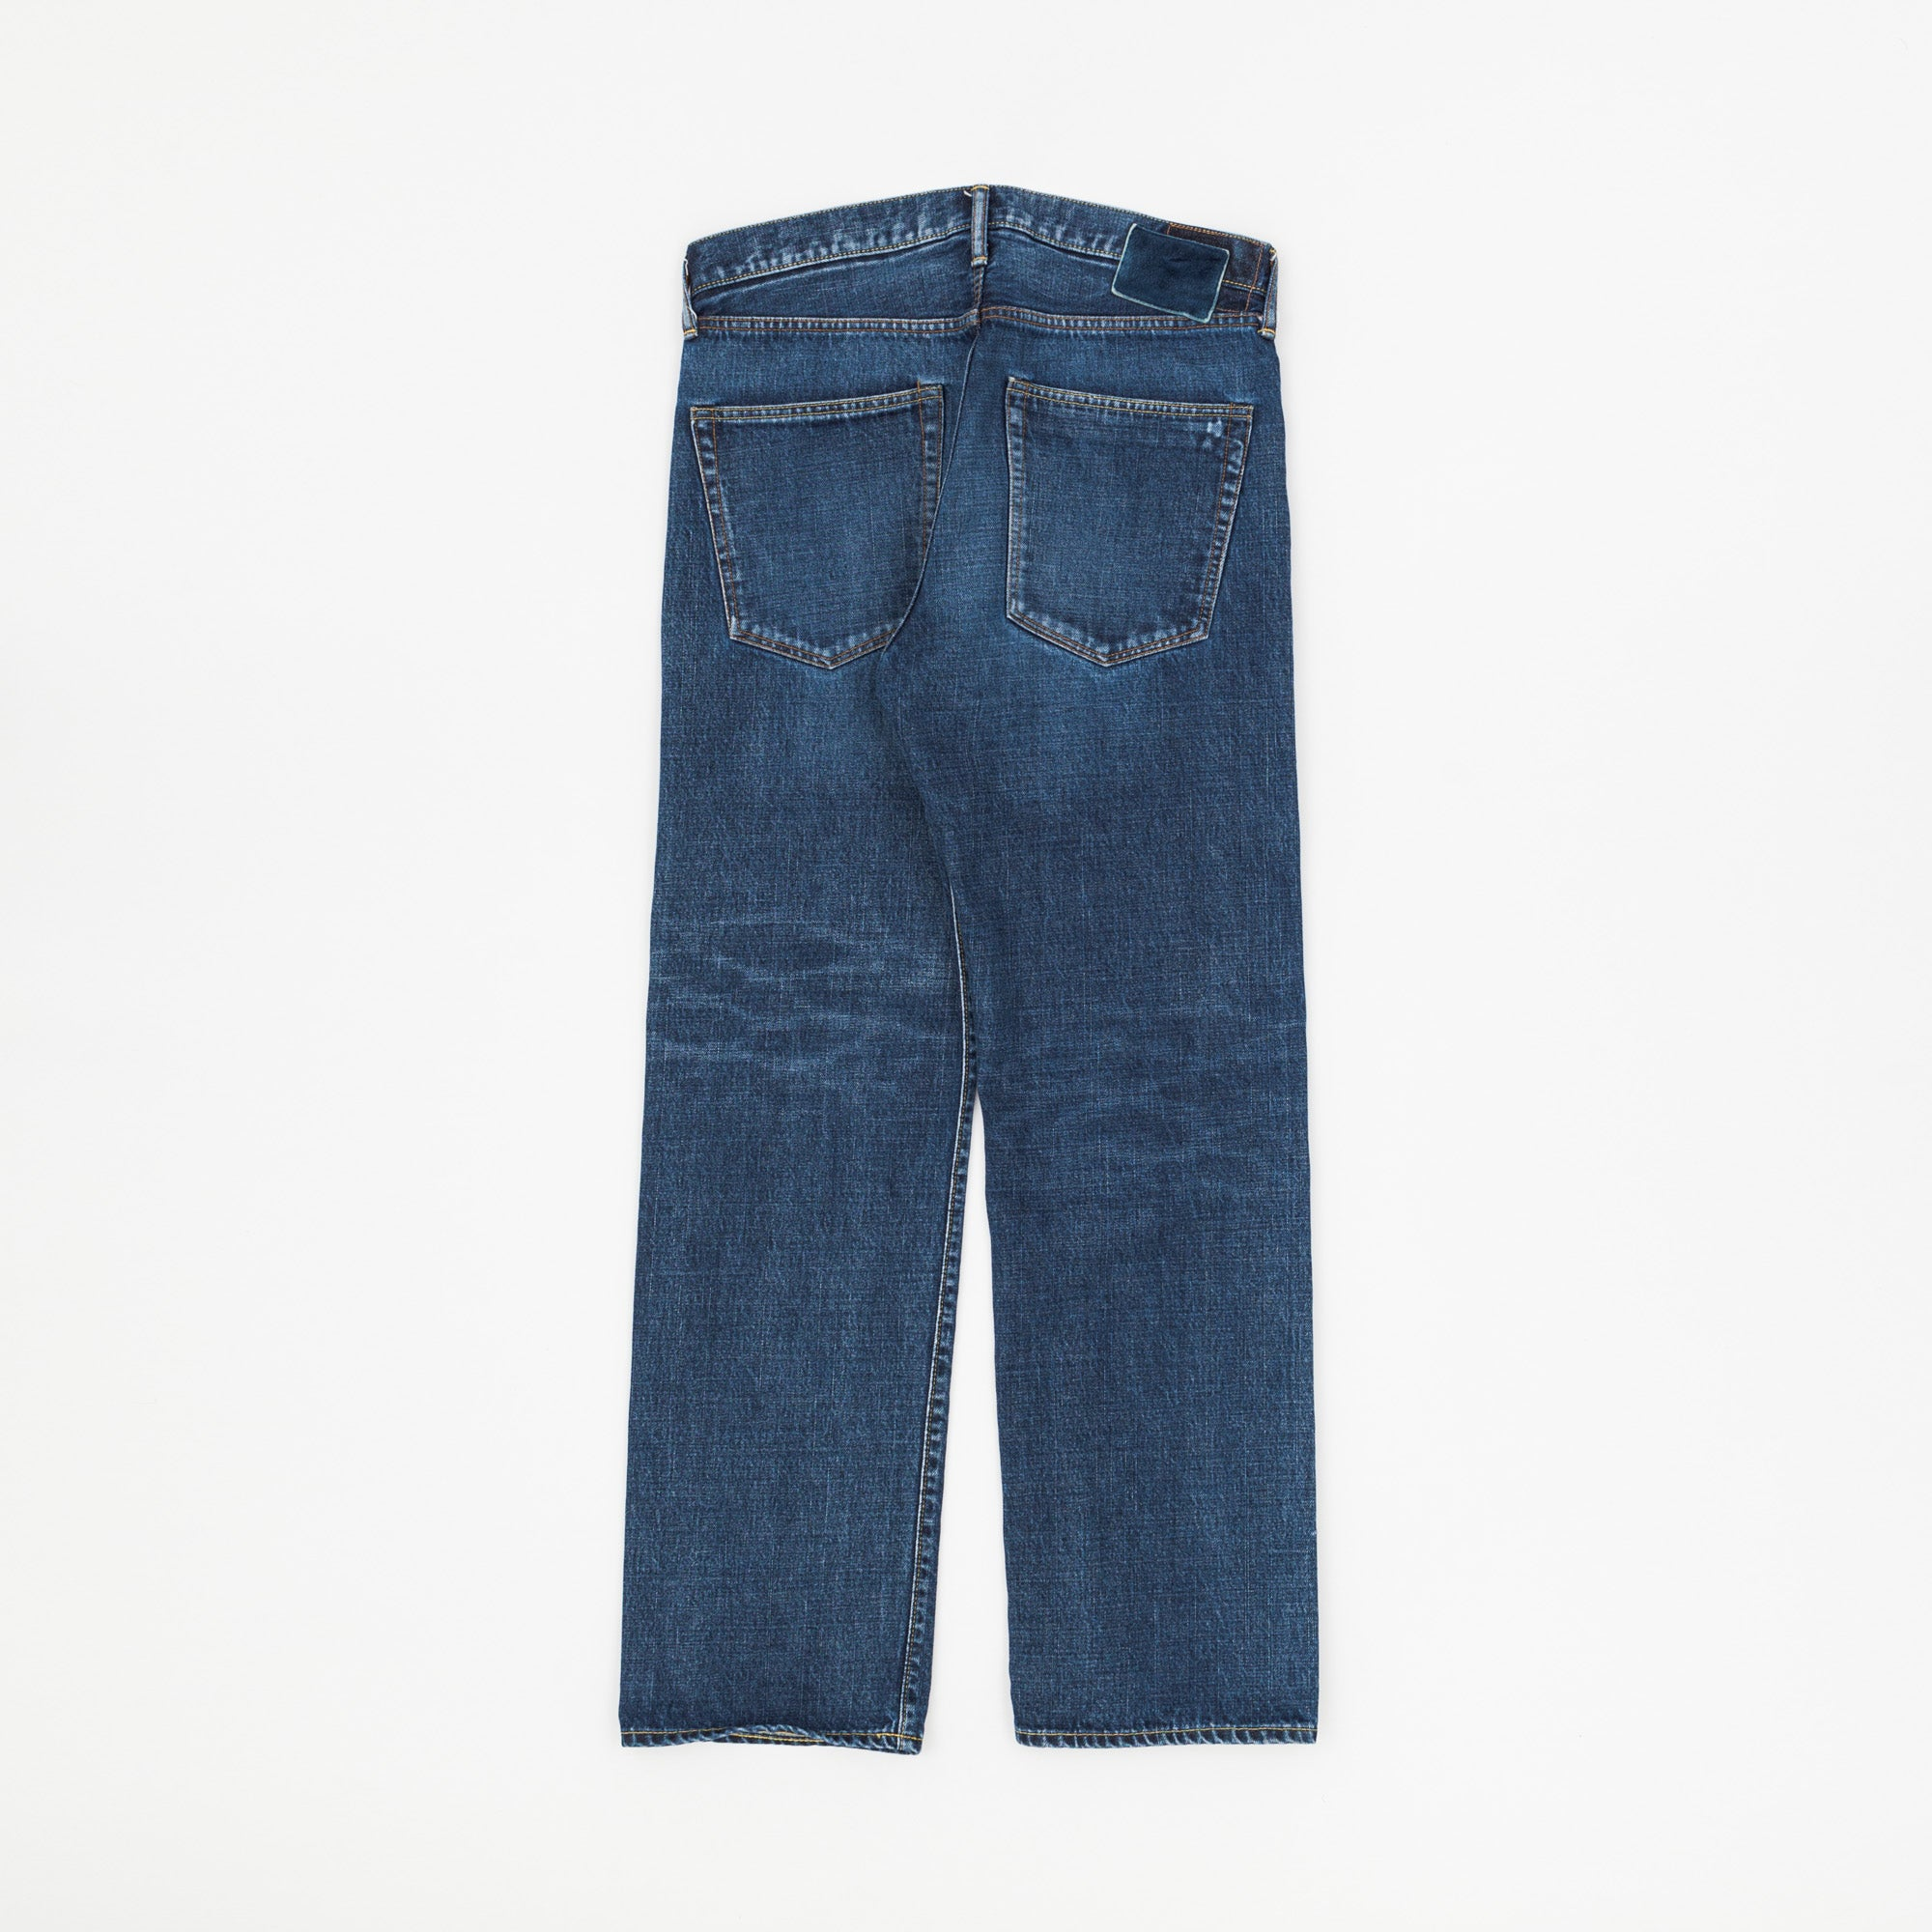 Social Sculpture 01 Selvedge Denim